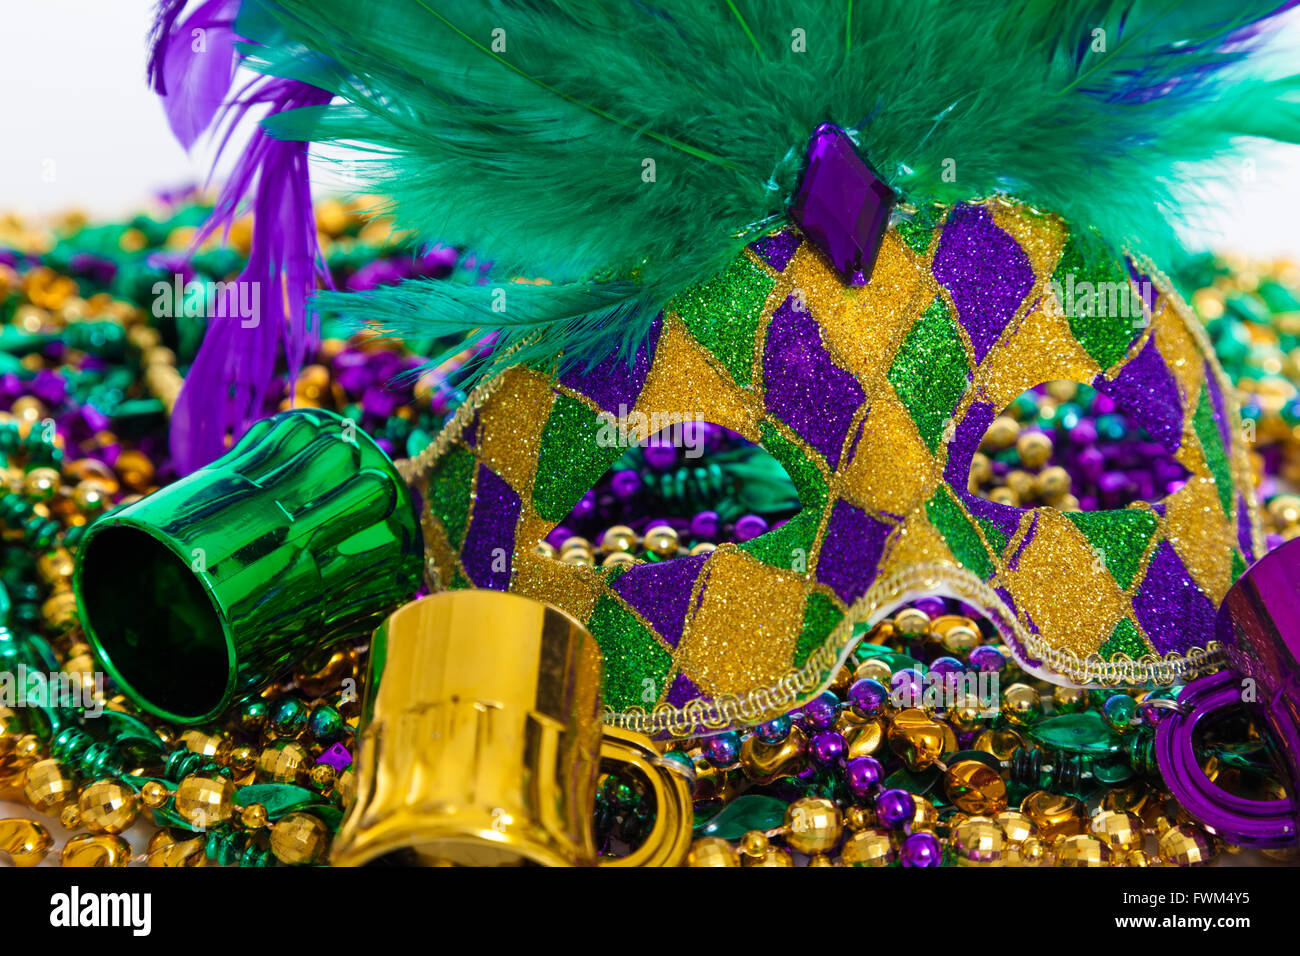 beads you health mardi personal gras alternet killing are your carnival